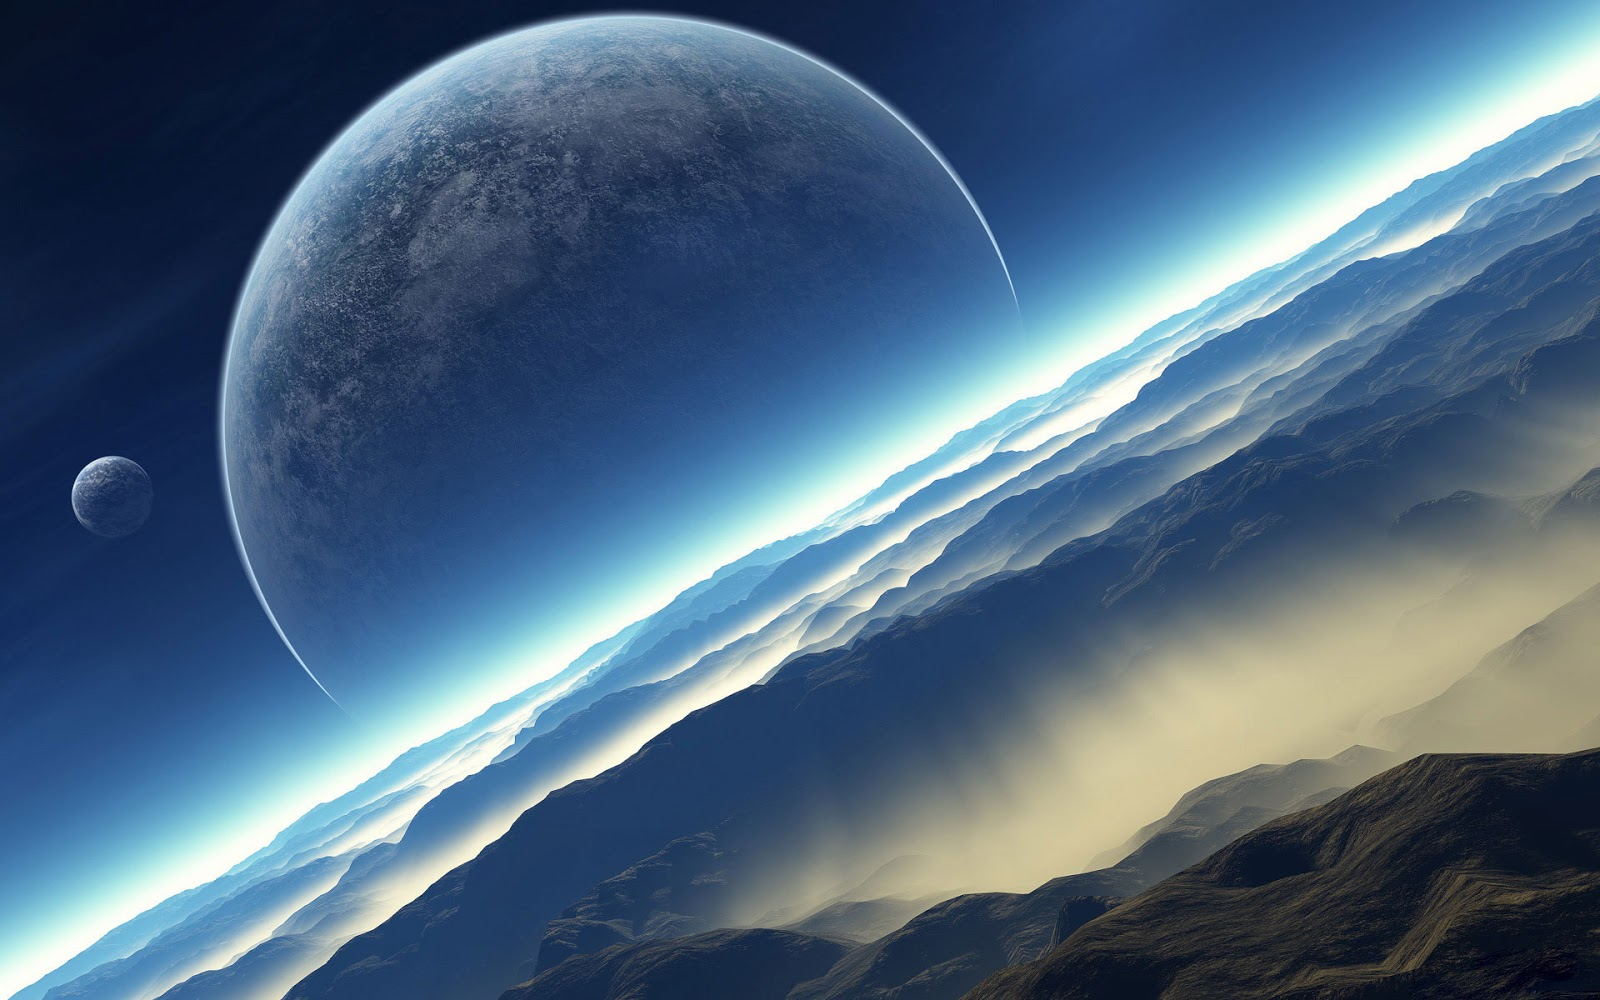 planets hd wallpapers - photo #4